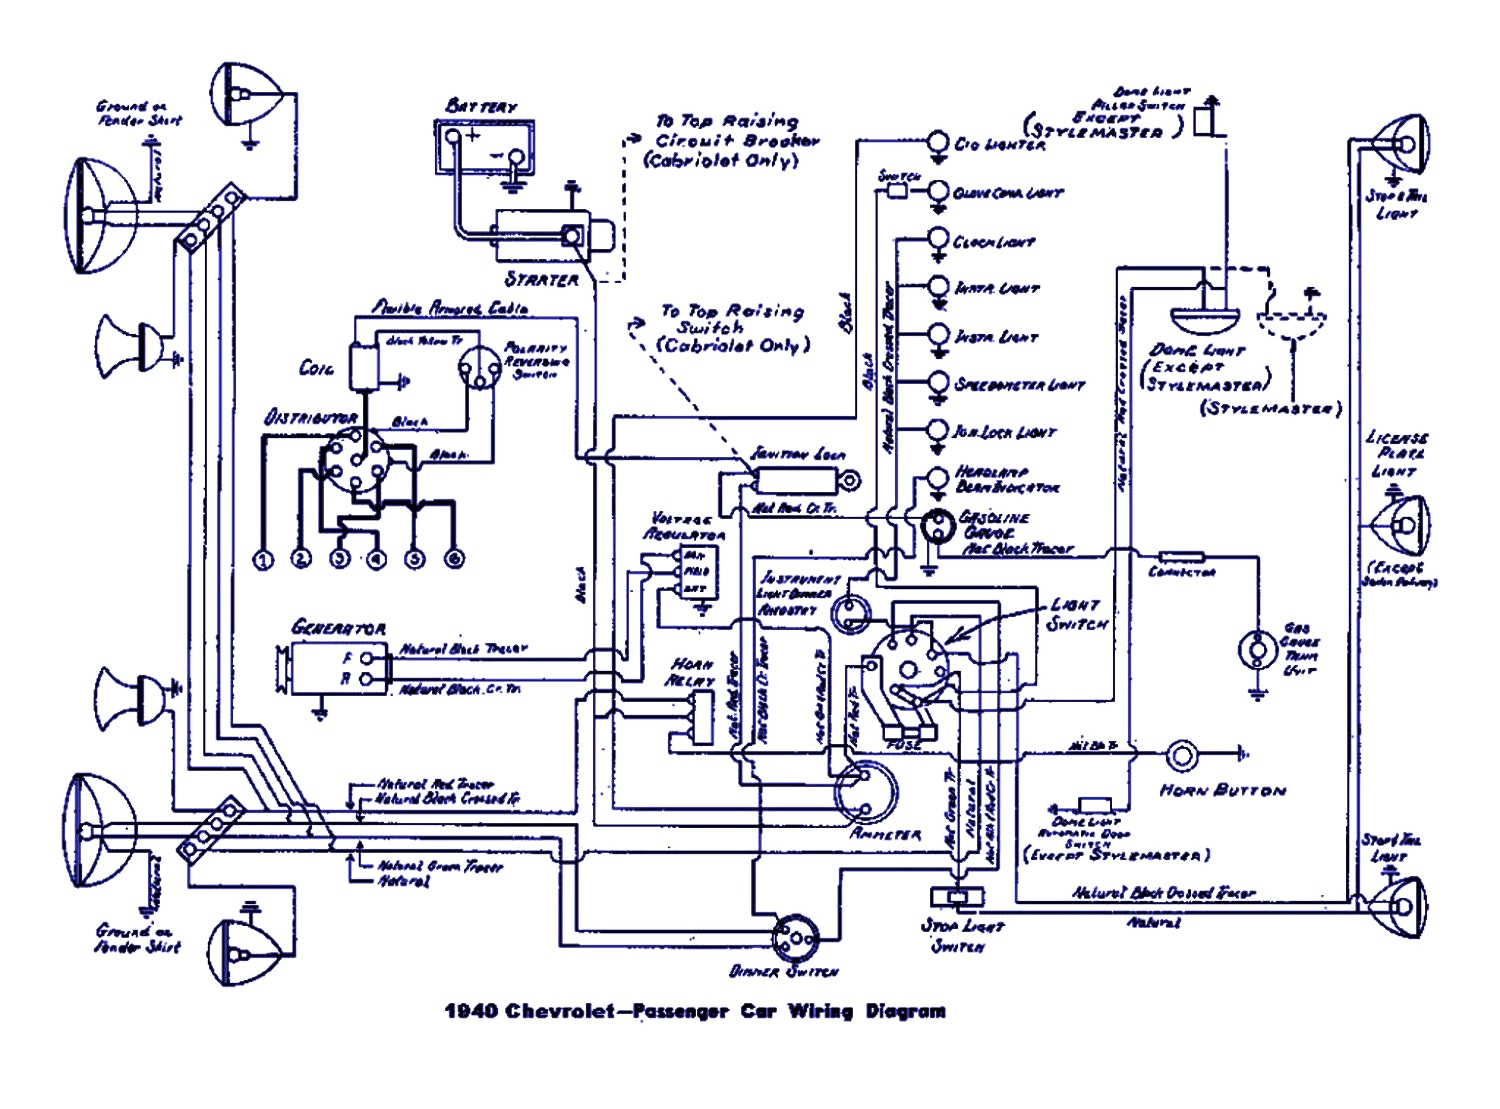 hight resolution of need wiring diagram for 1990 ezgo golf cart wiring diagram completed1990 ezgo wiring diagram data wiring